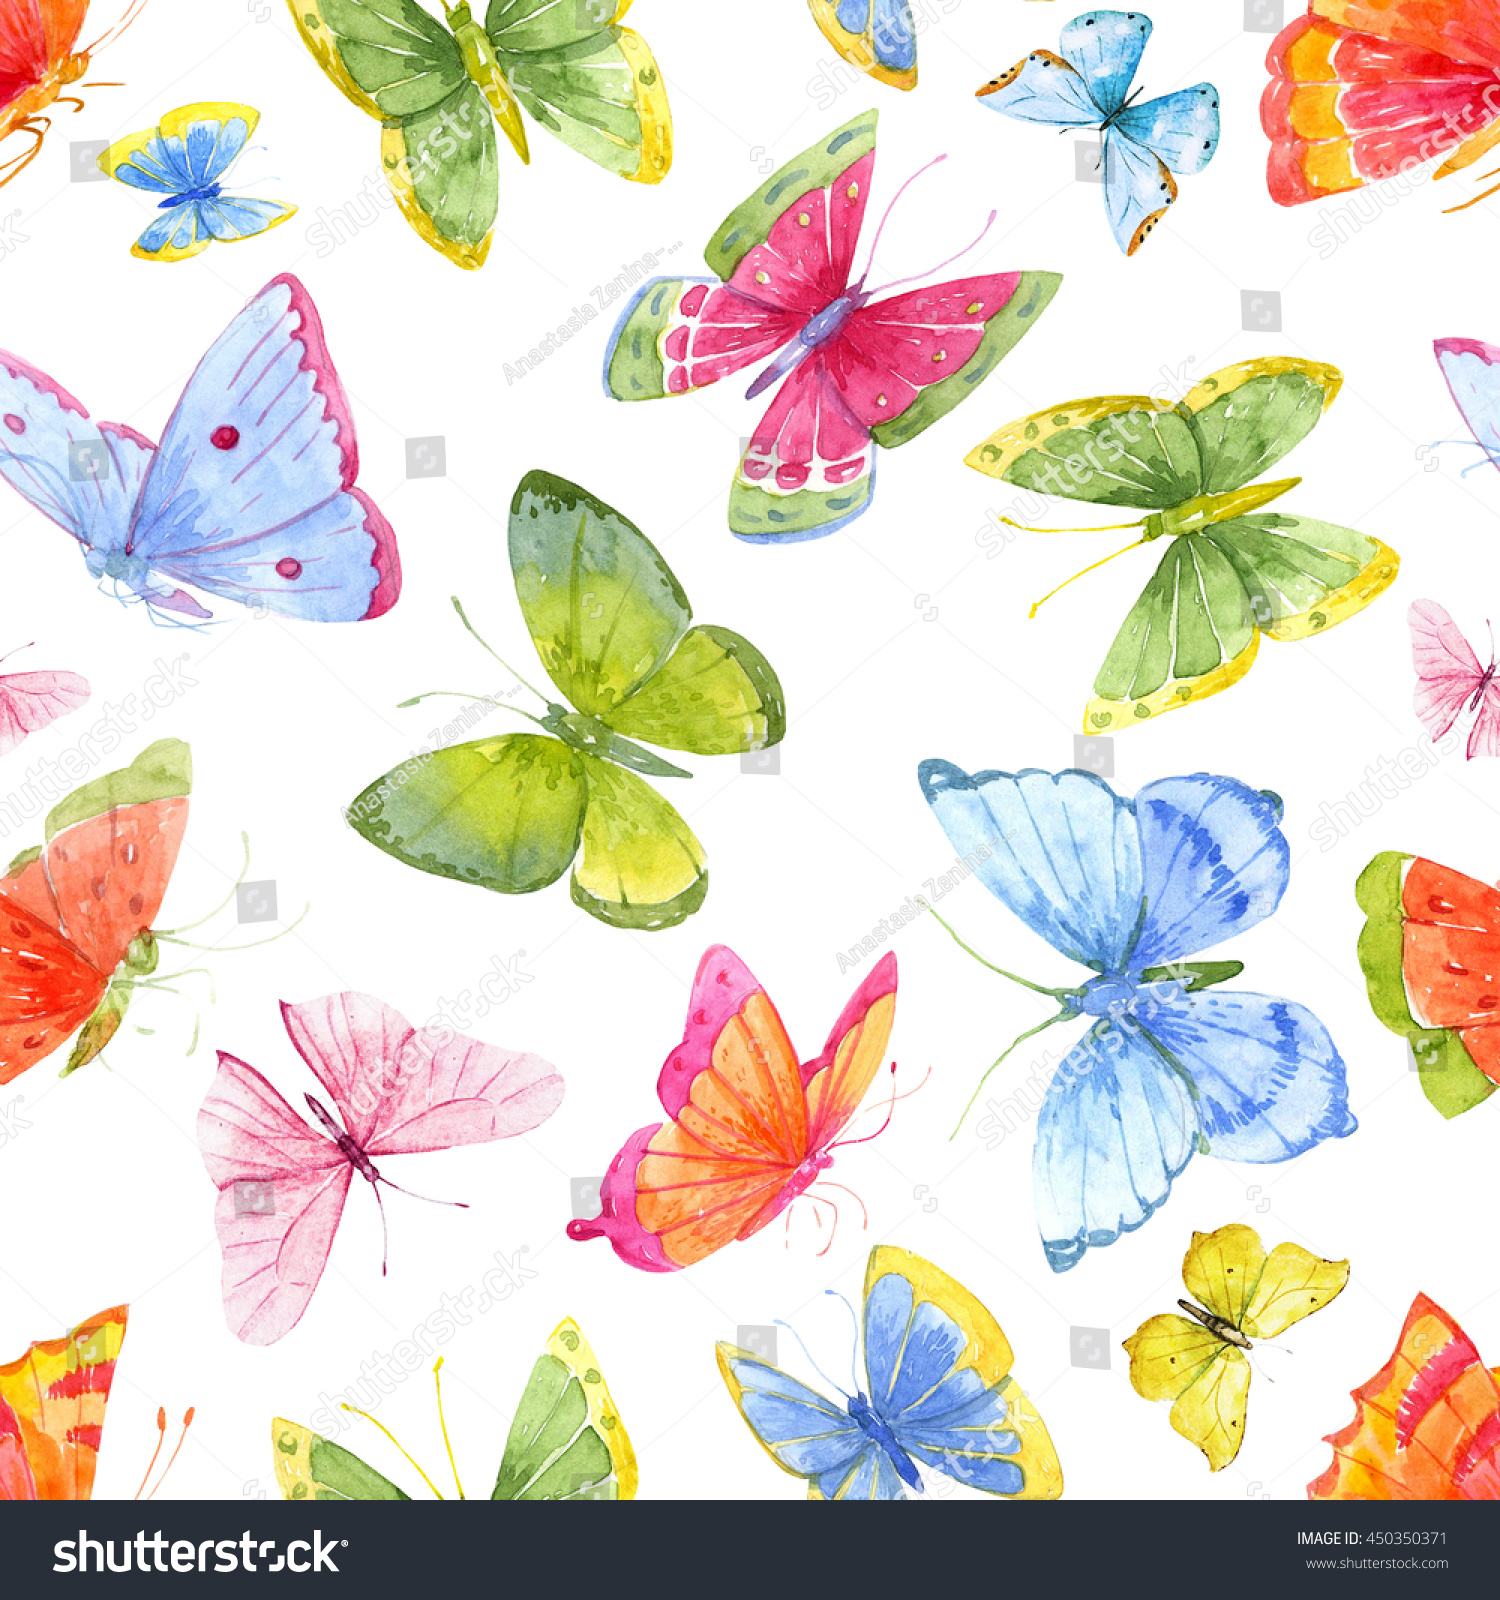 Watercolor Pattern Of Bright Butterflies, Colorful